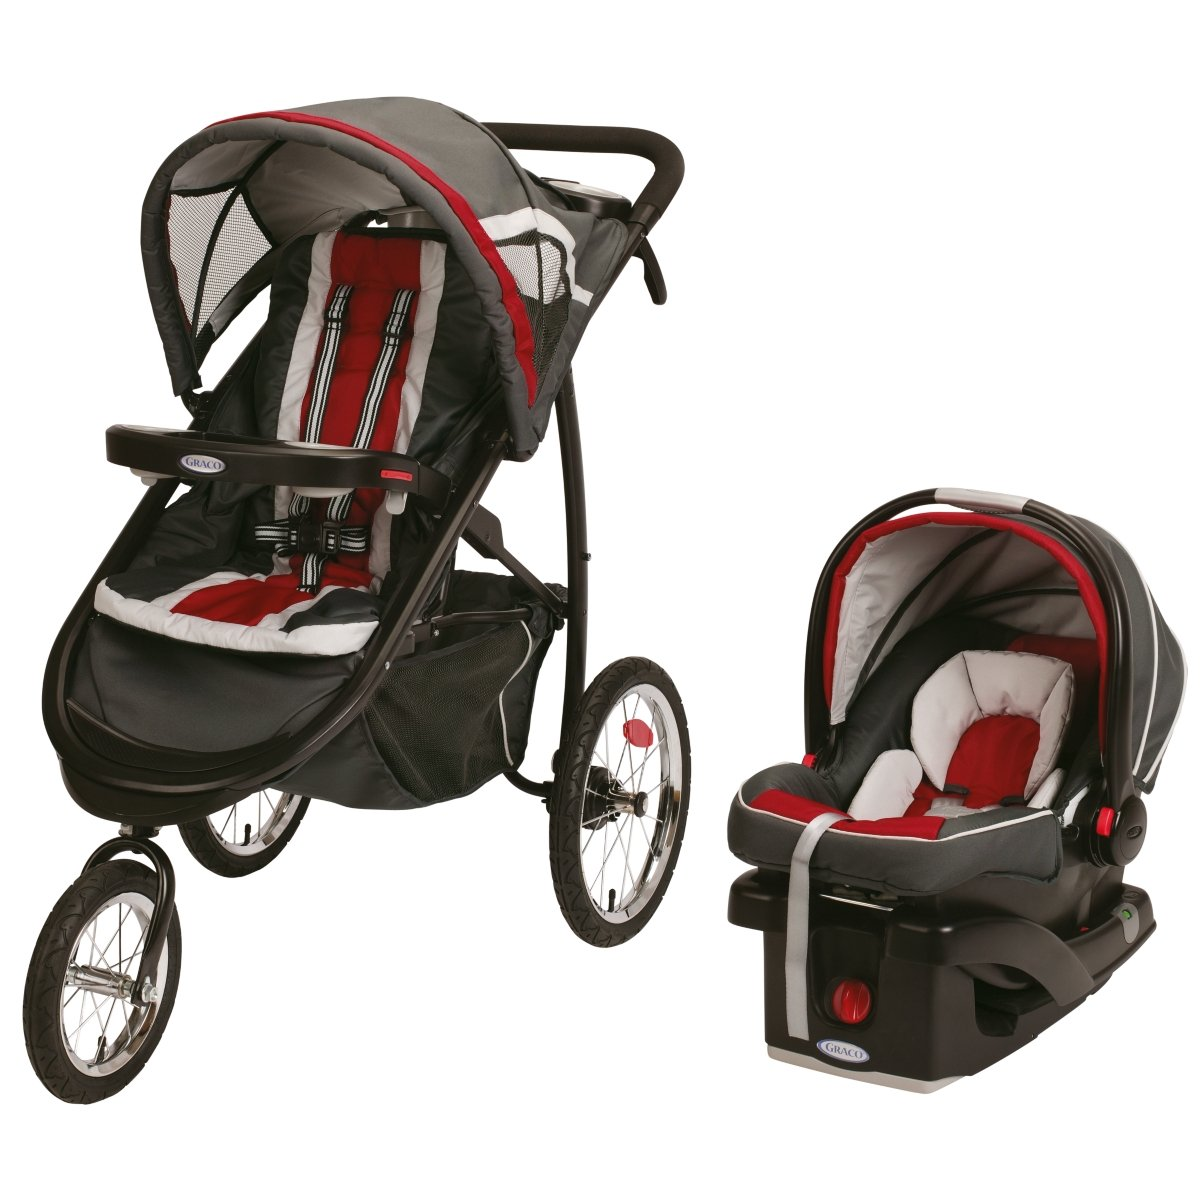 Graco Childrens Products Graco FastAction Fold Jogger Click Connect Travel System/Click Connect 35, Chili Red at Sears.com